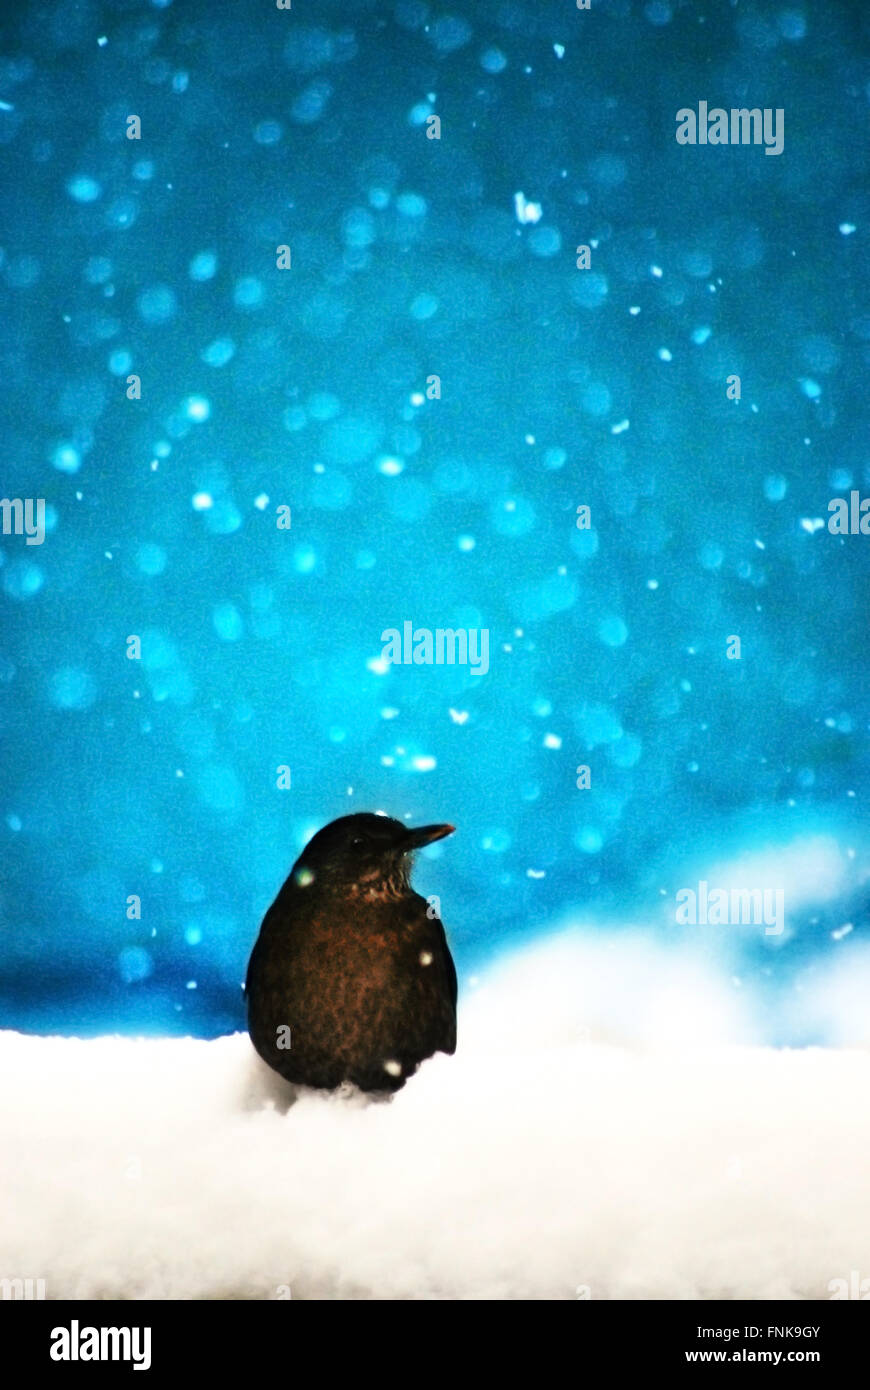 bird sitting in snow - Stock Image